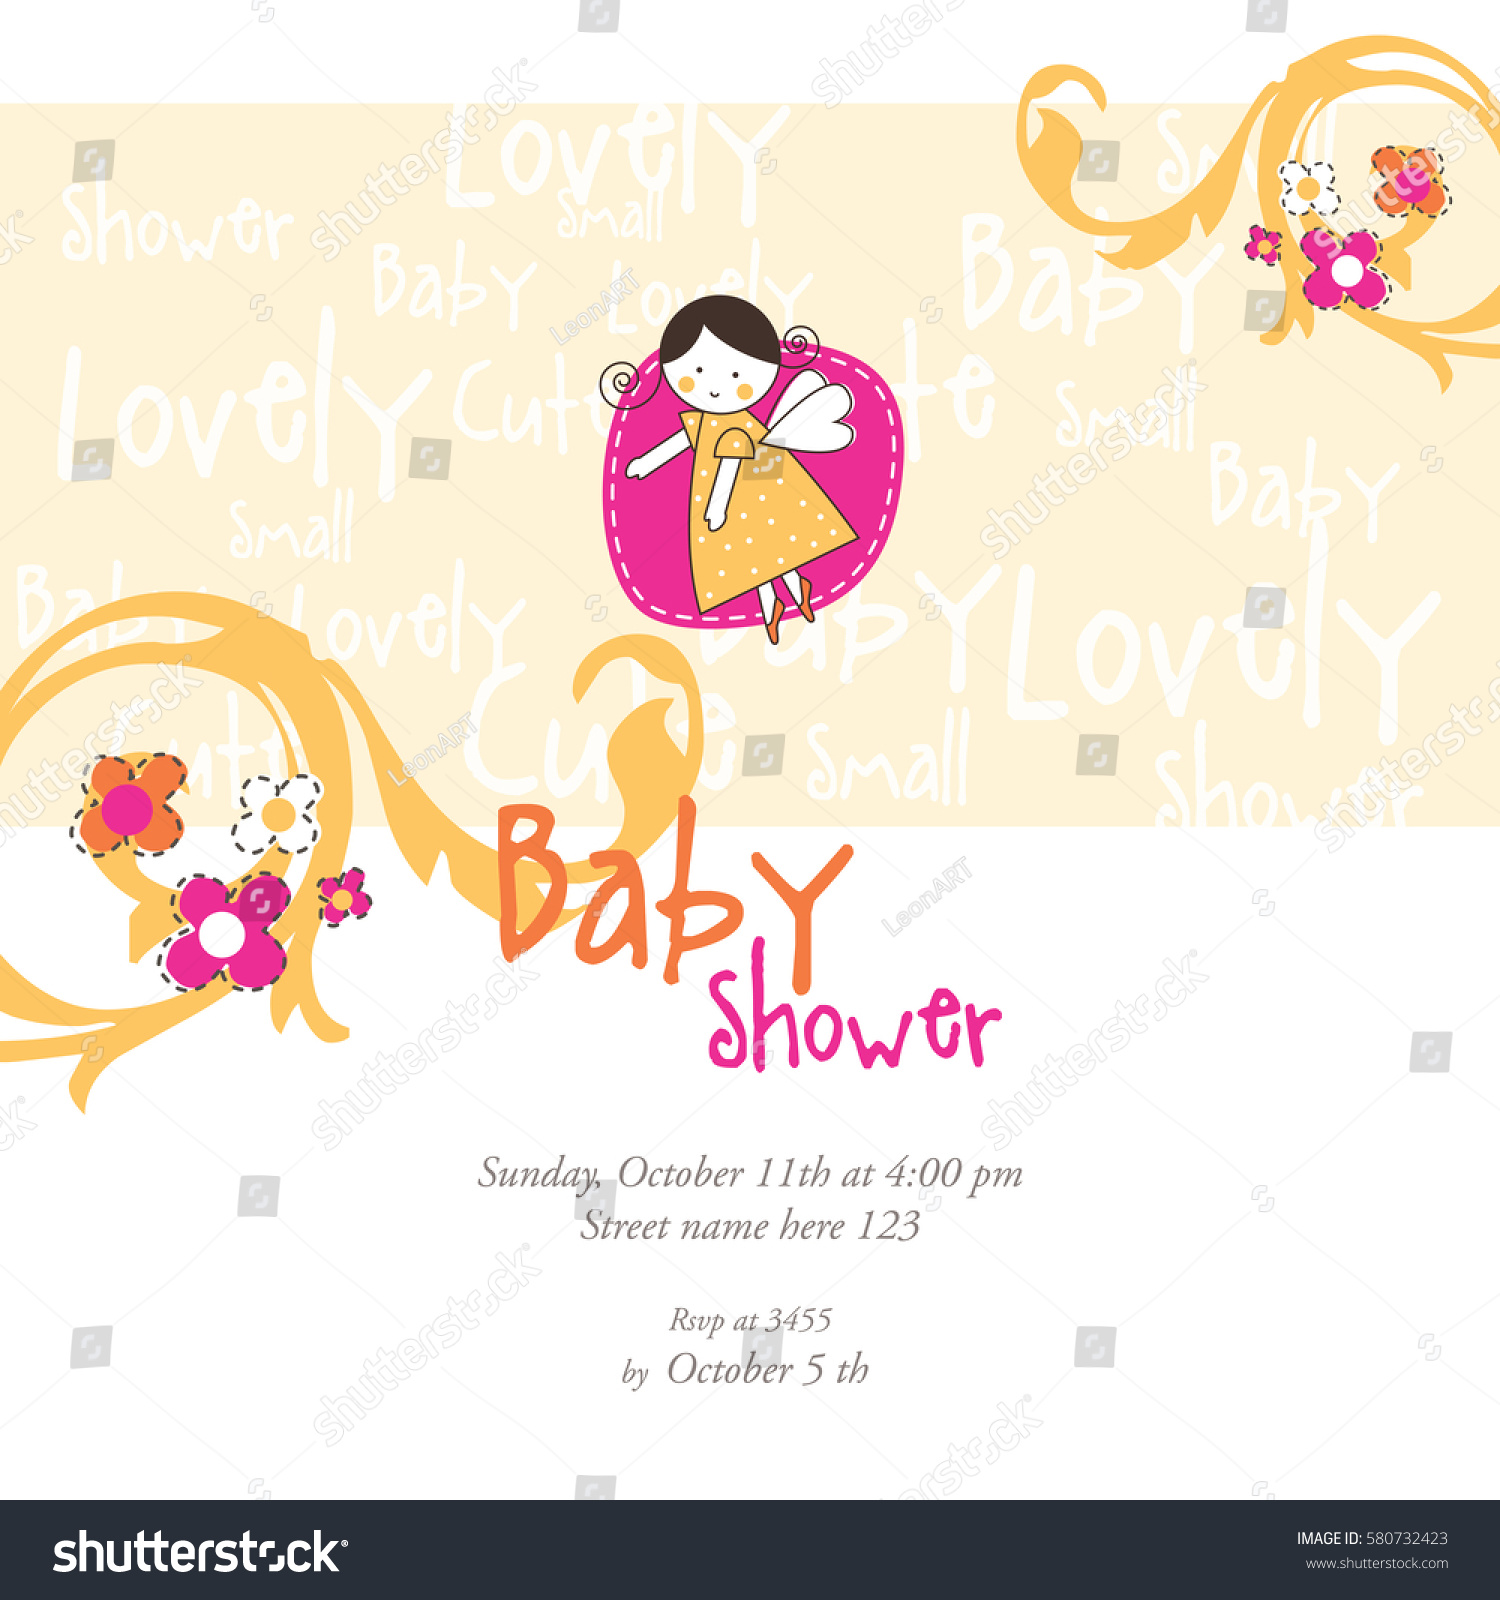 Baby Shower Invitation Template Card Invitation Stock Vector ...